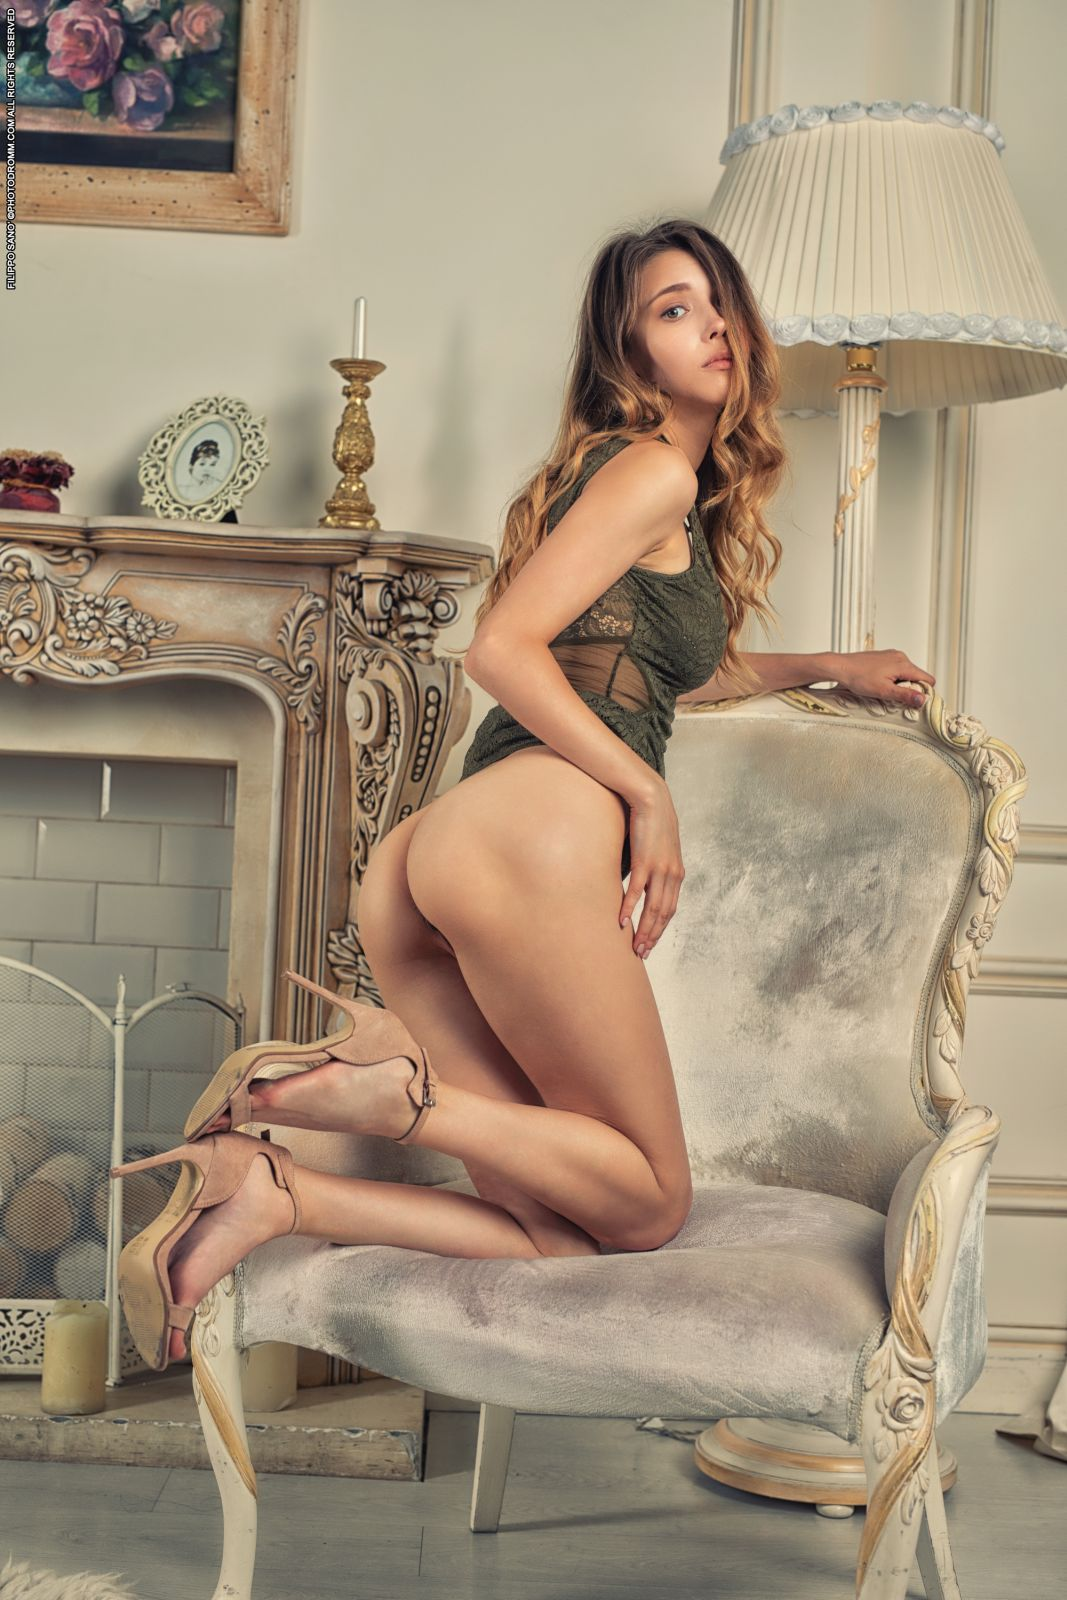 Young busty girl Mila Azul bares it all | Babe Pictures